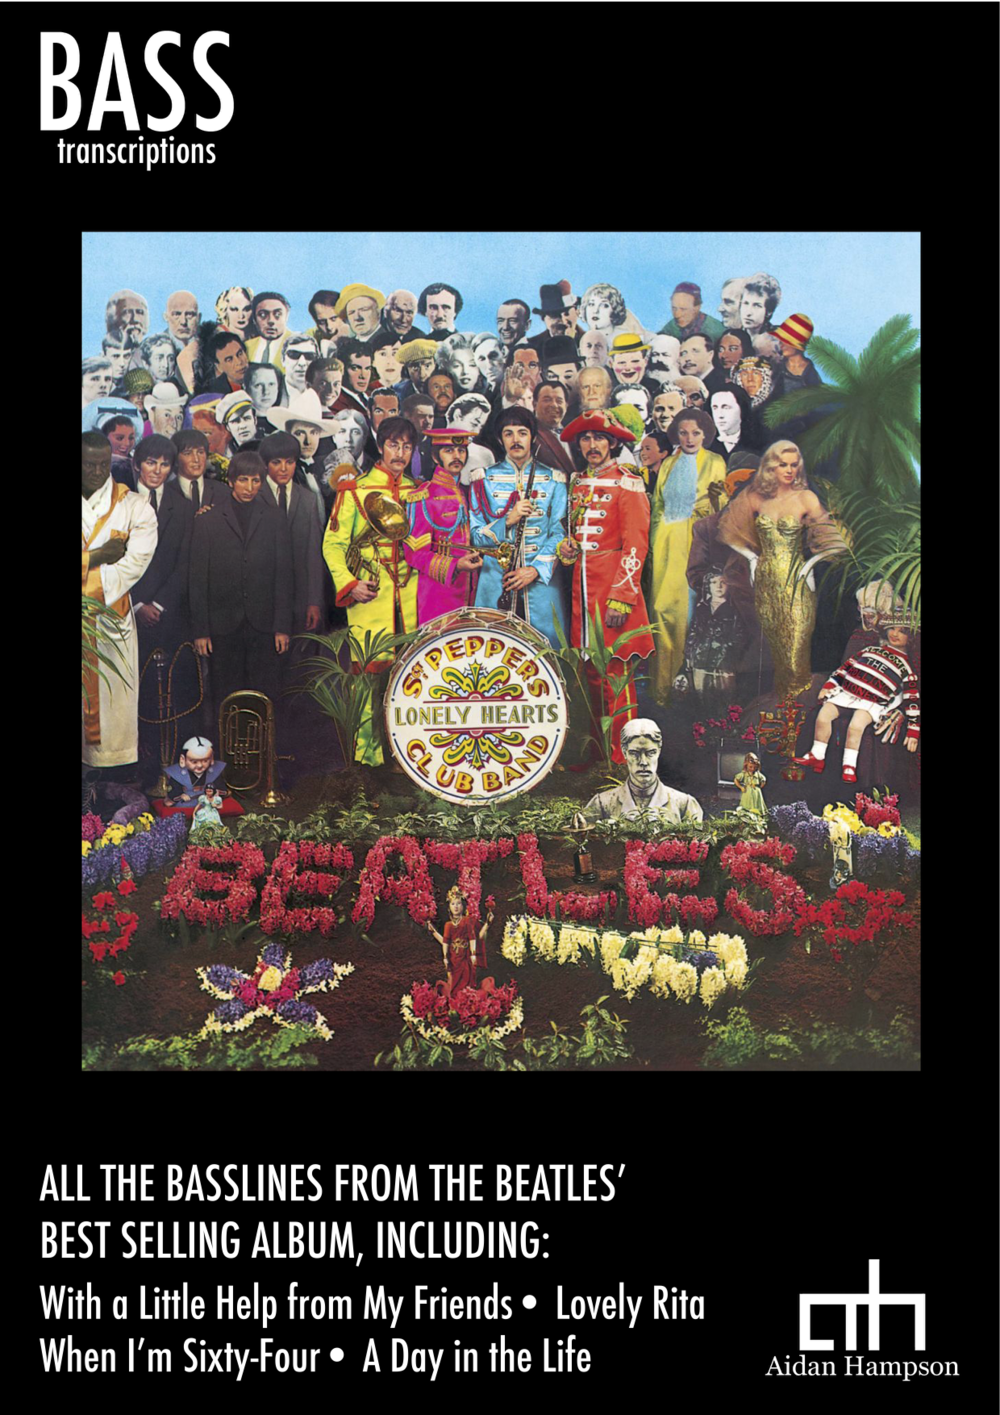 The Beatles - Sgt. Pepper's Lonely Hearts Club Band - Bass.png